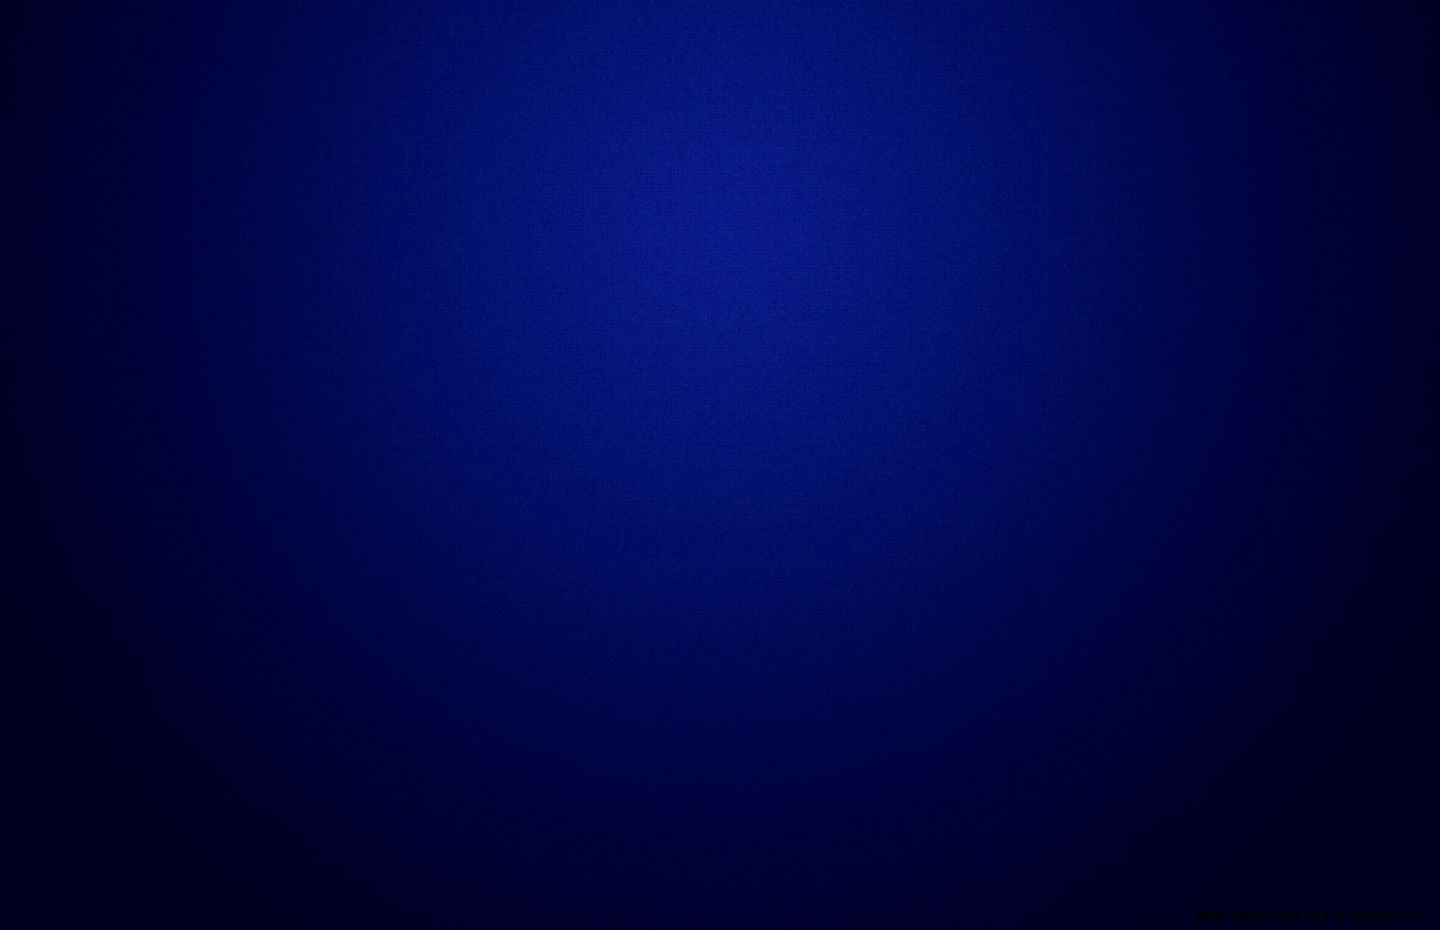 Free Dark Blue Background | Wallpapers Gallery Dark Blue Background Hd